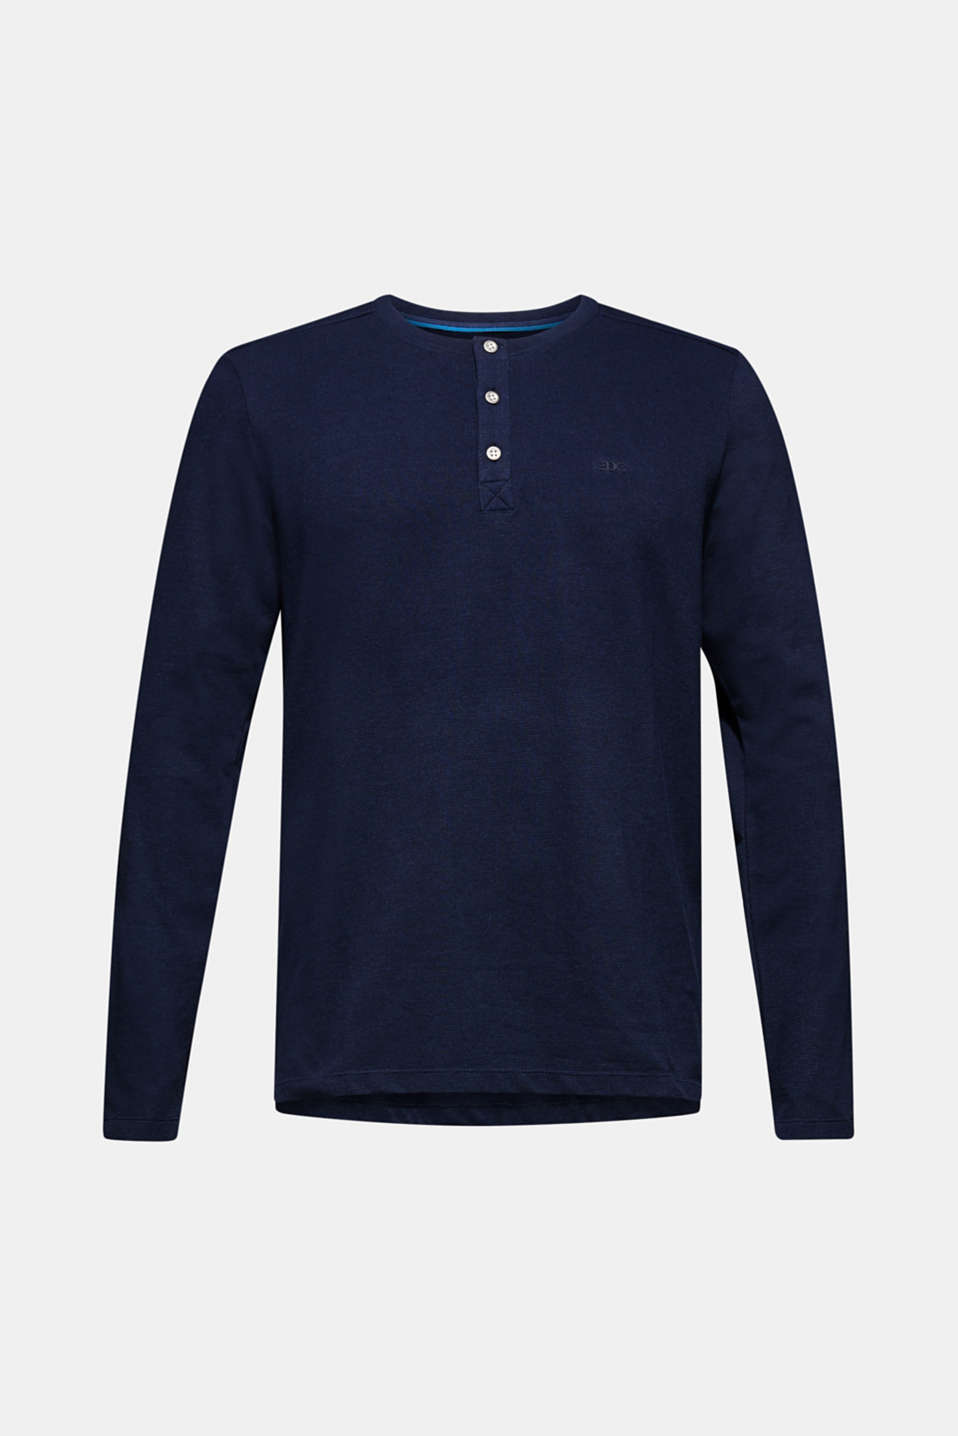 Long sleeve top made of textured jersey, NAVY, detail image number 6